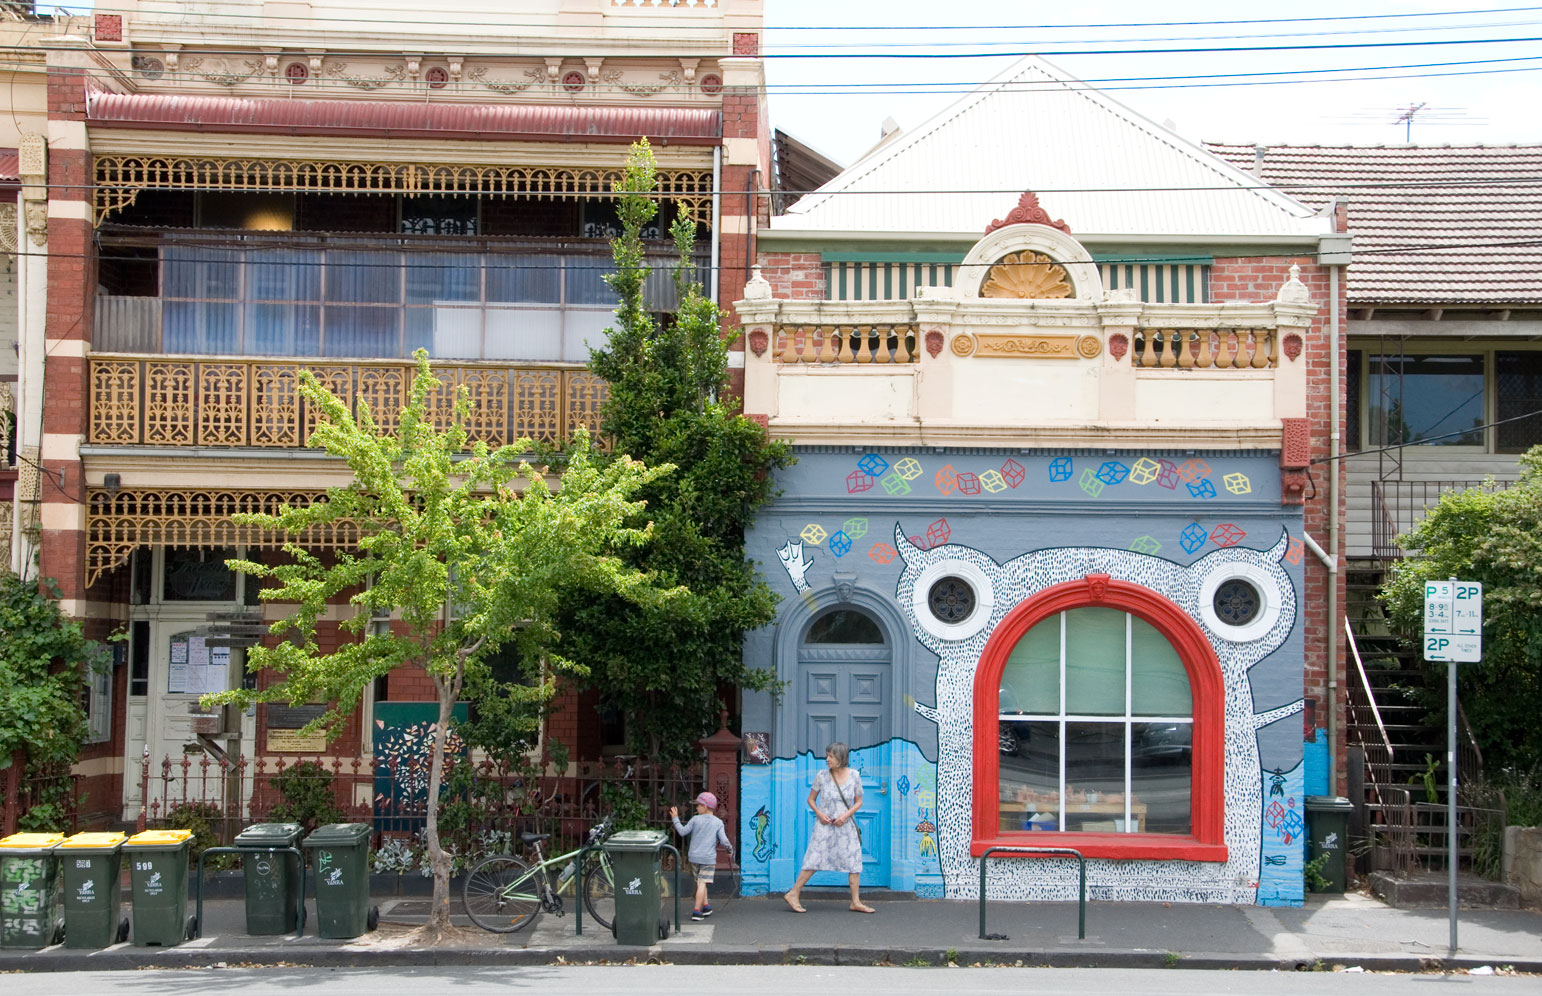 all-those-shapes_-_nikkis-cravings_-_screamy-house_-_north-fitzroy